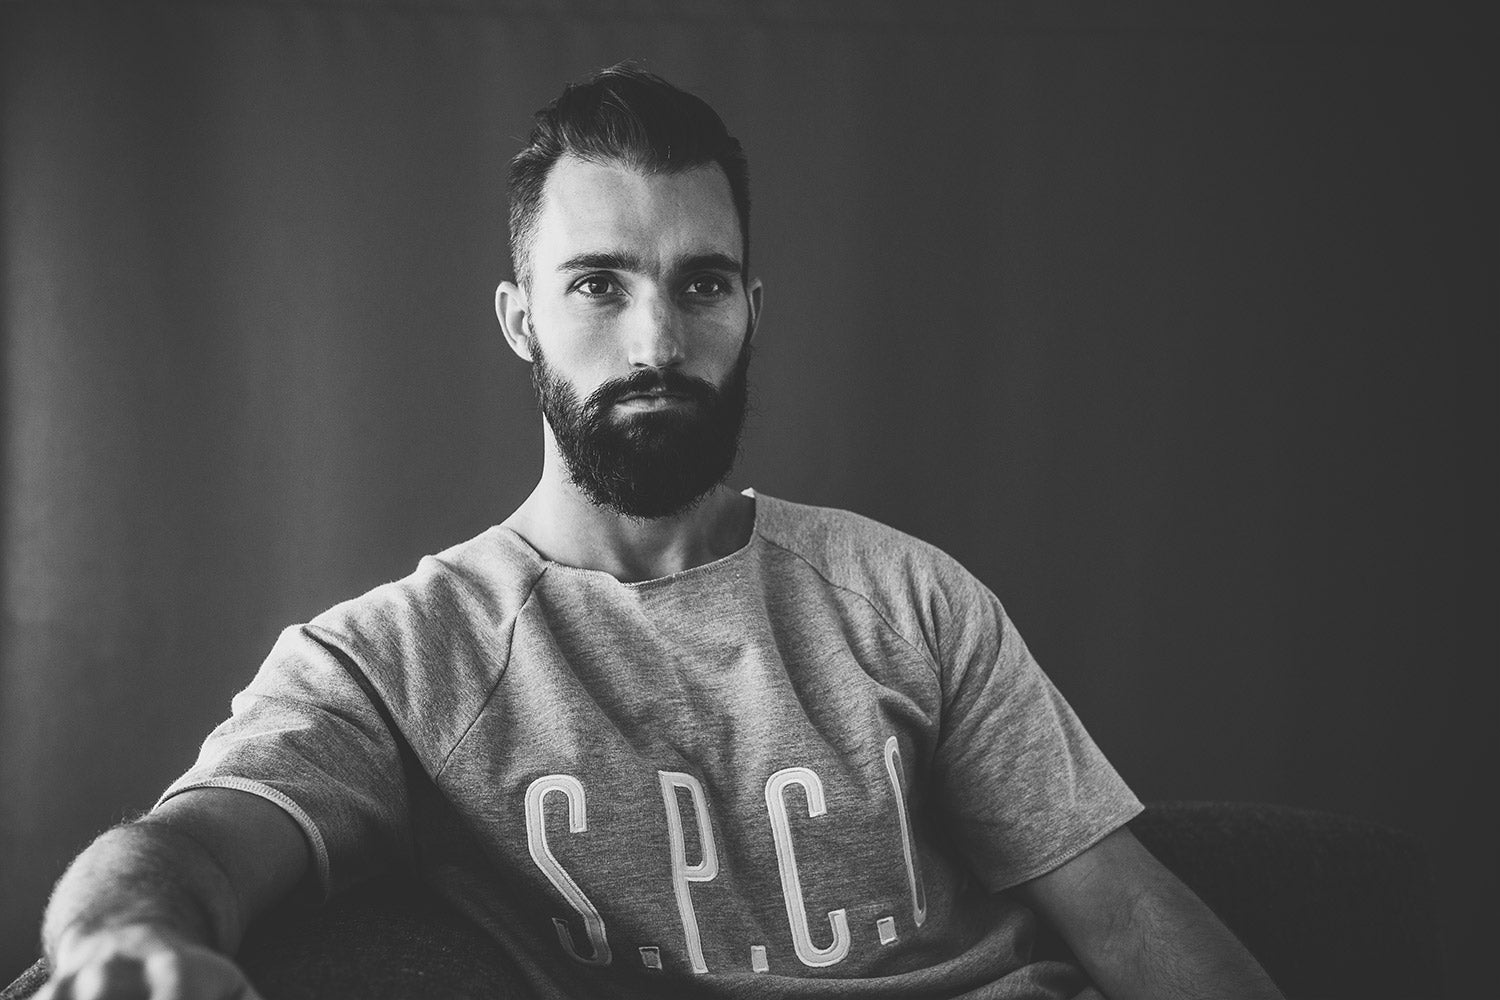 S.P.C.C | Online Store| About Us | Mens Clothing and Fashion